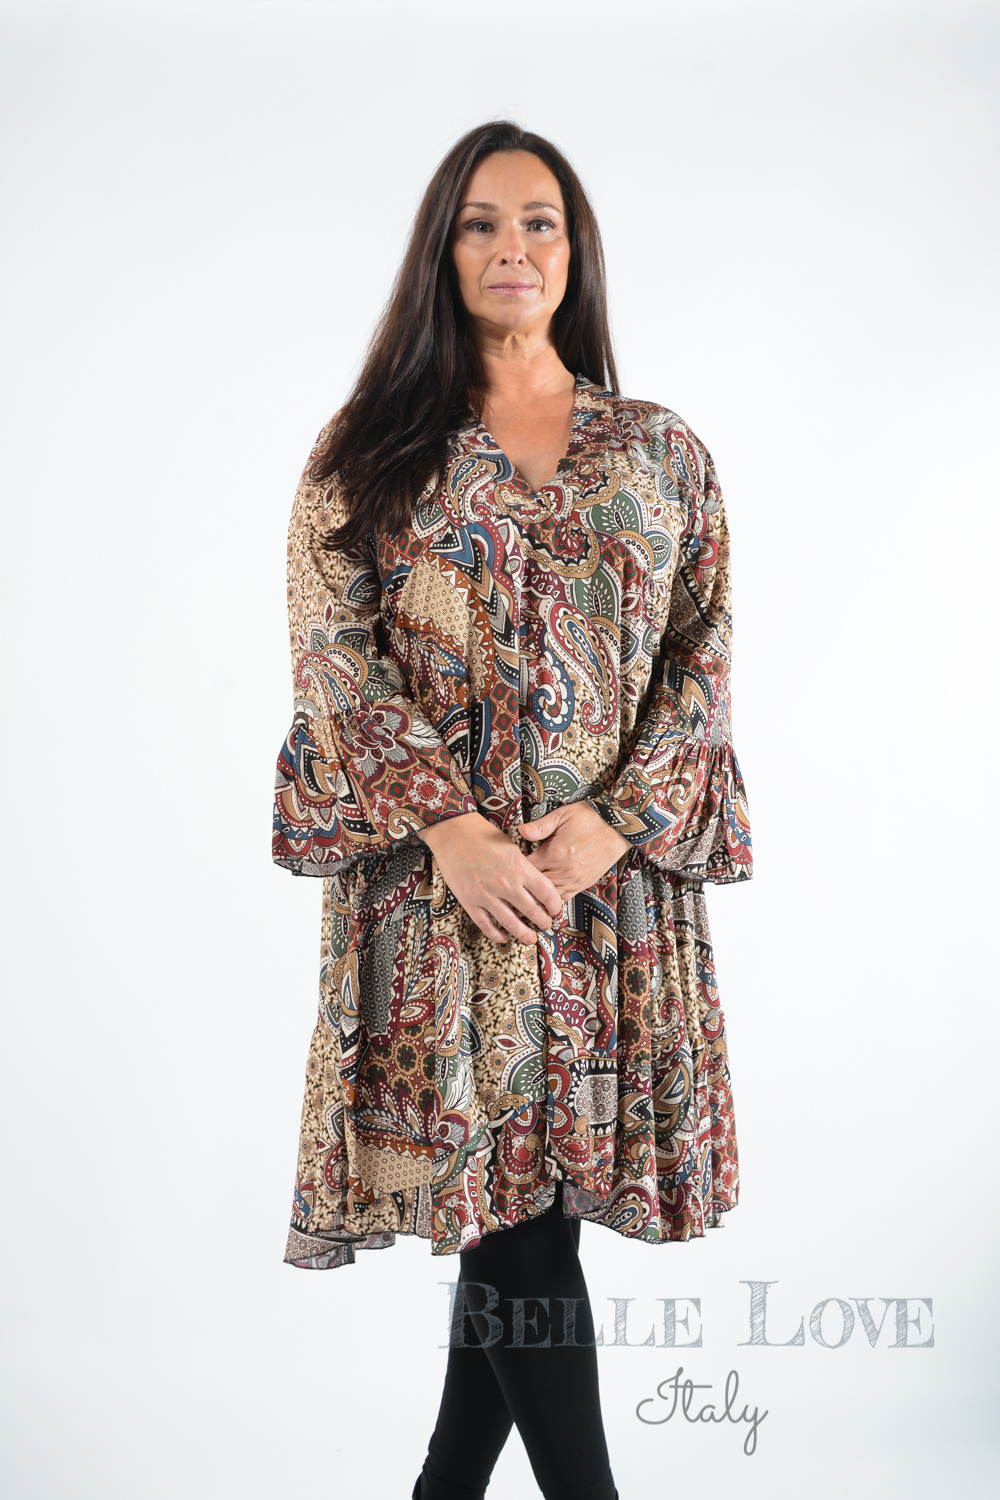 Belle Love Italy Paisley Smock Dress